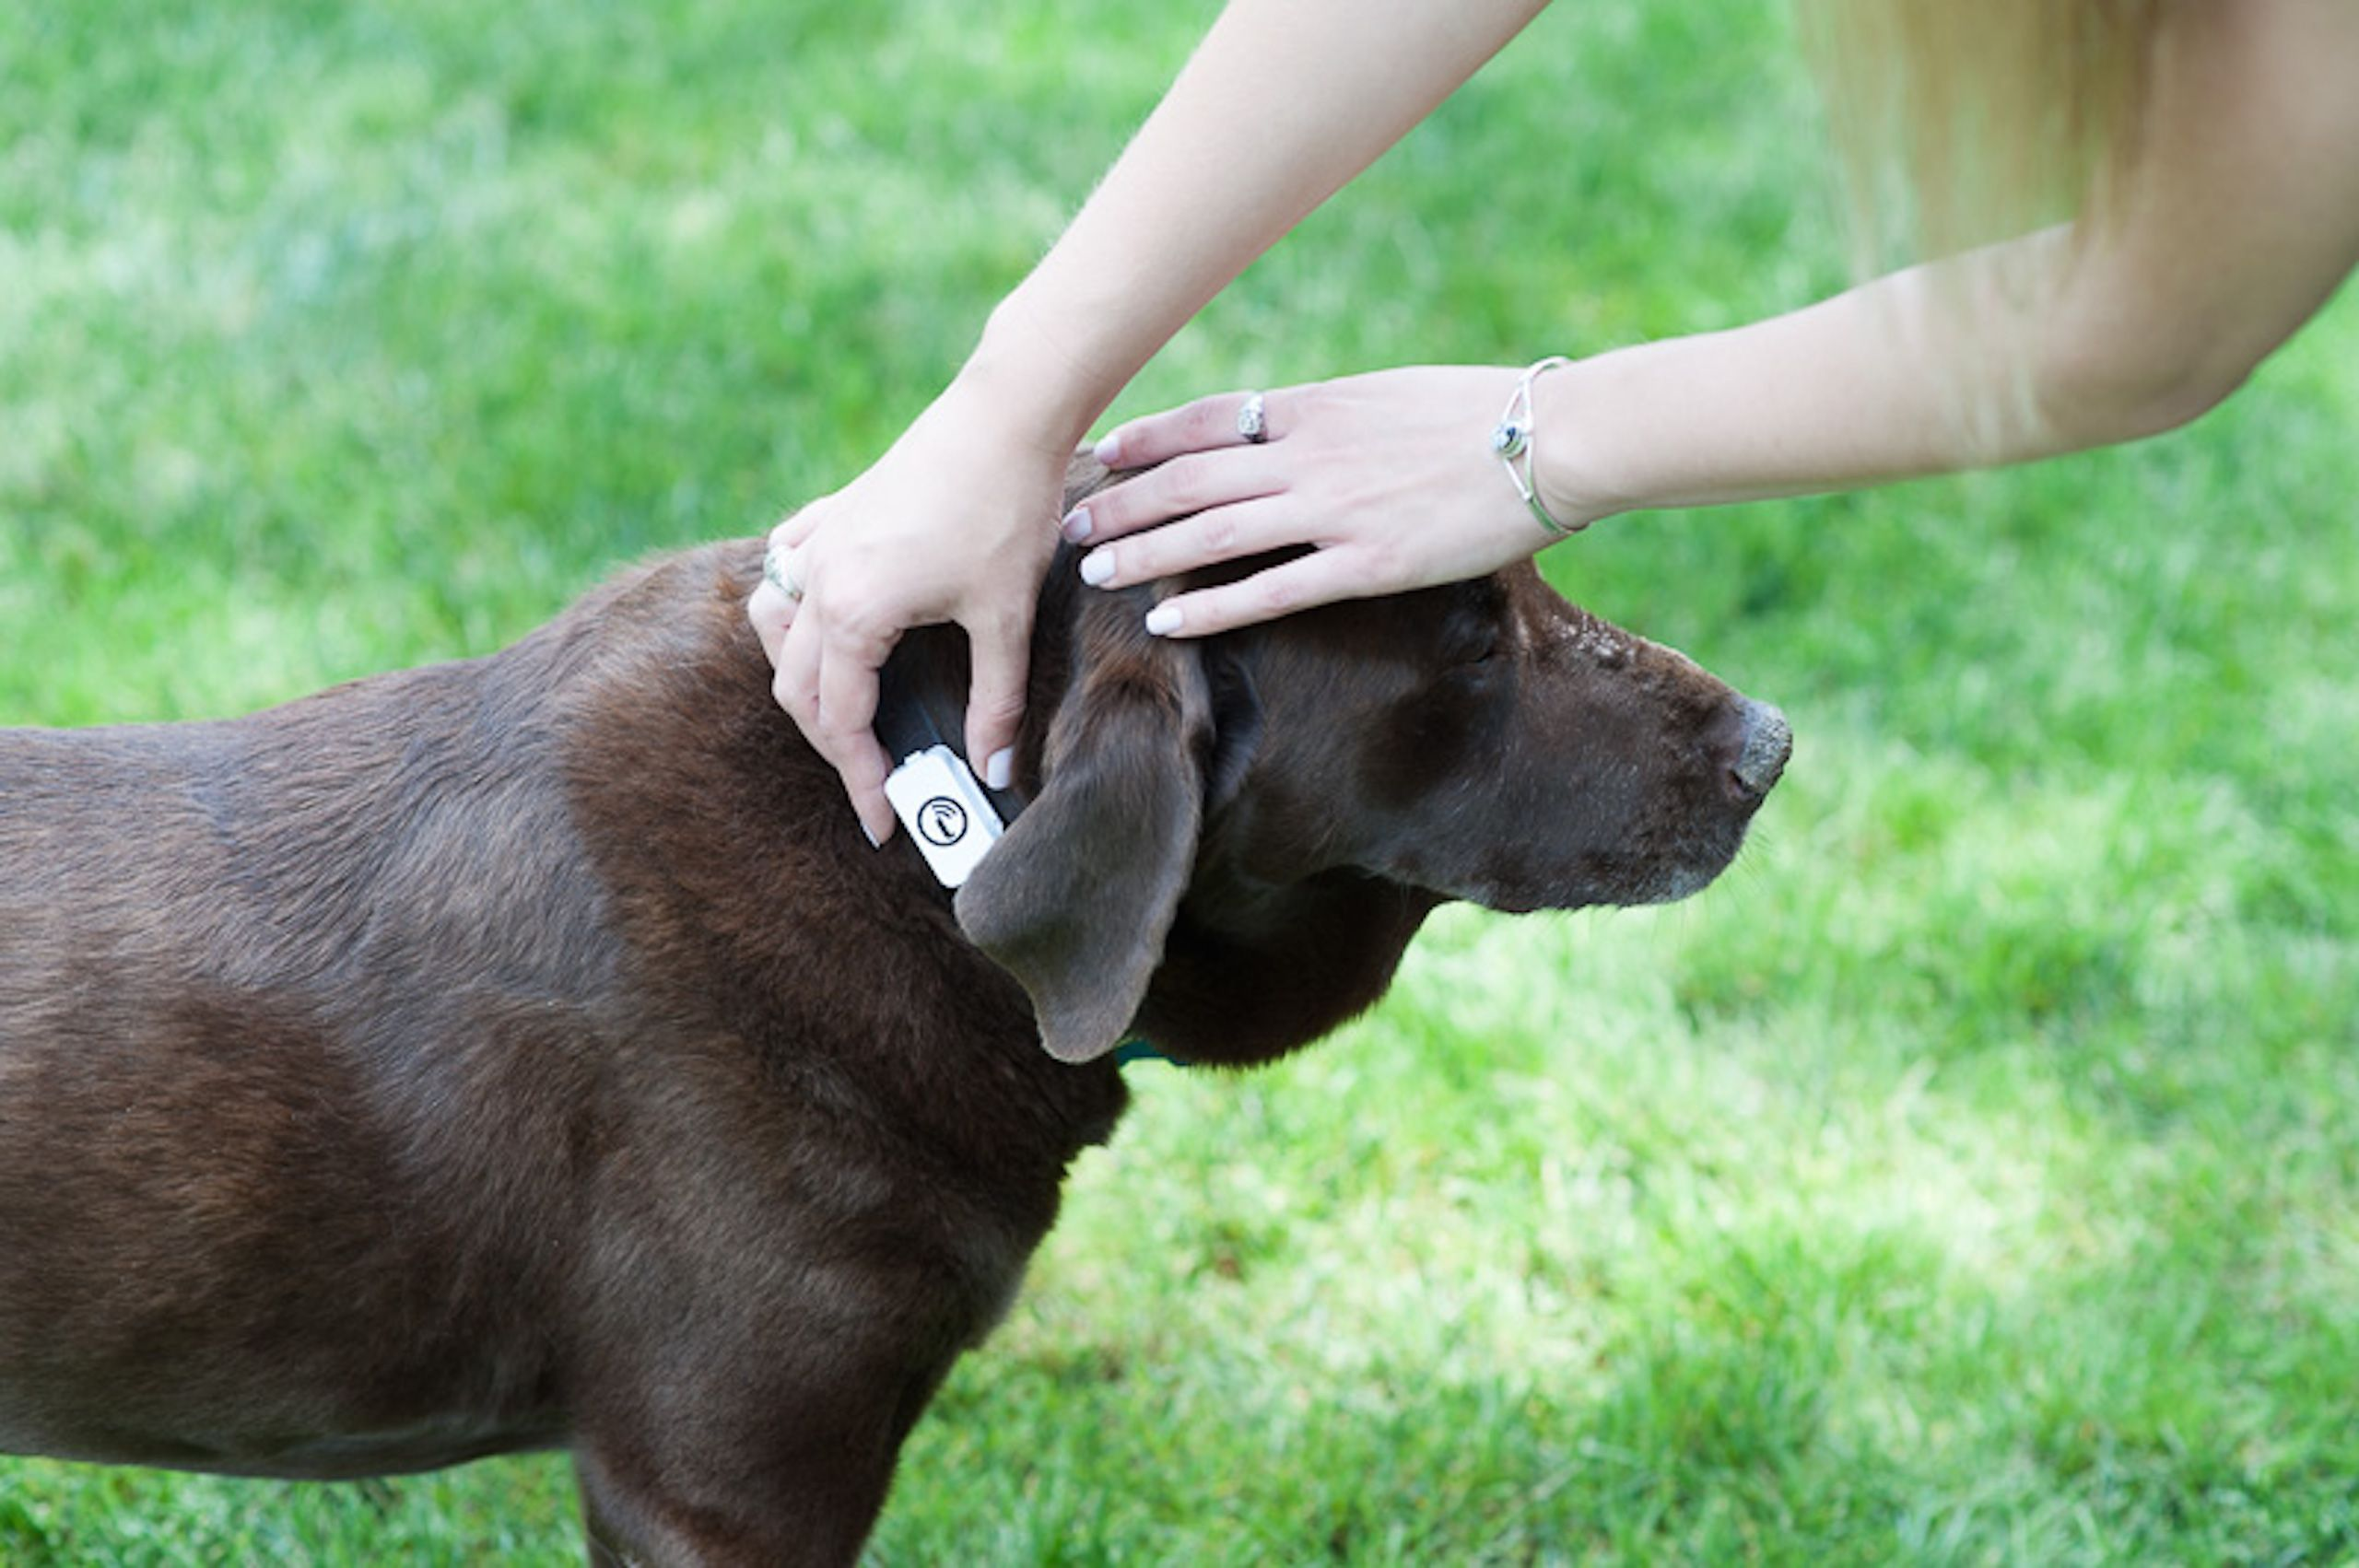 The Iota Is The Only Gps Pet Tracker Without Monthly Fees Set Up A Geofence